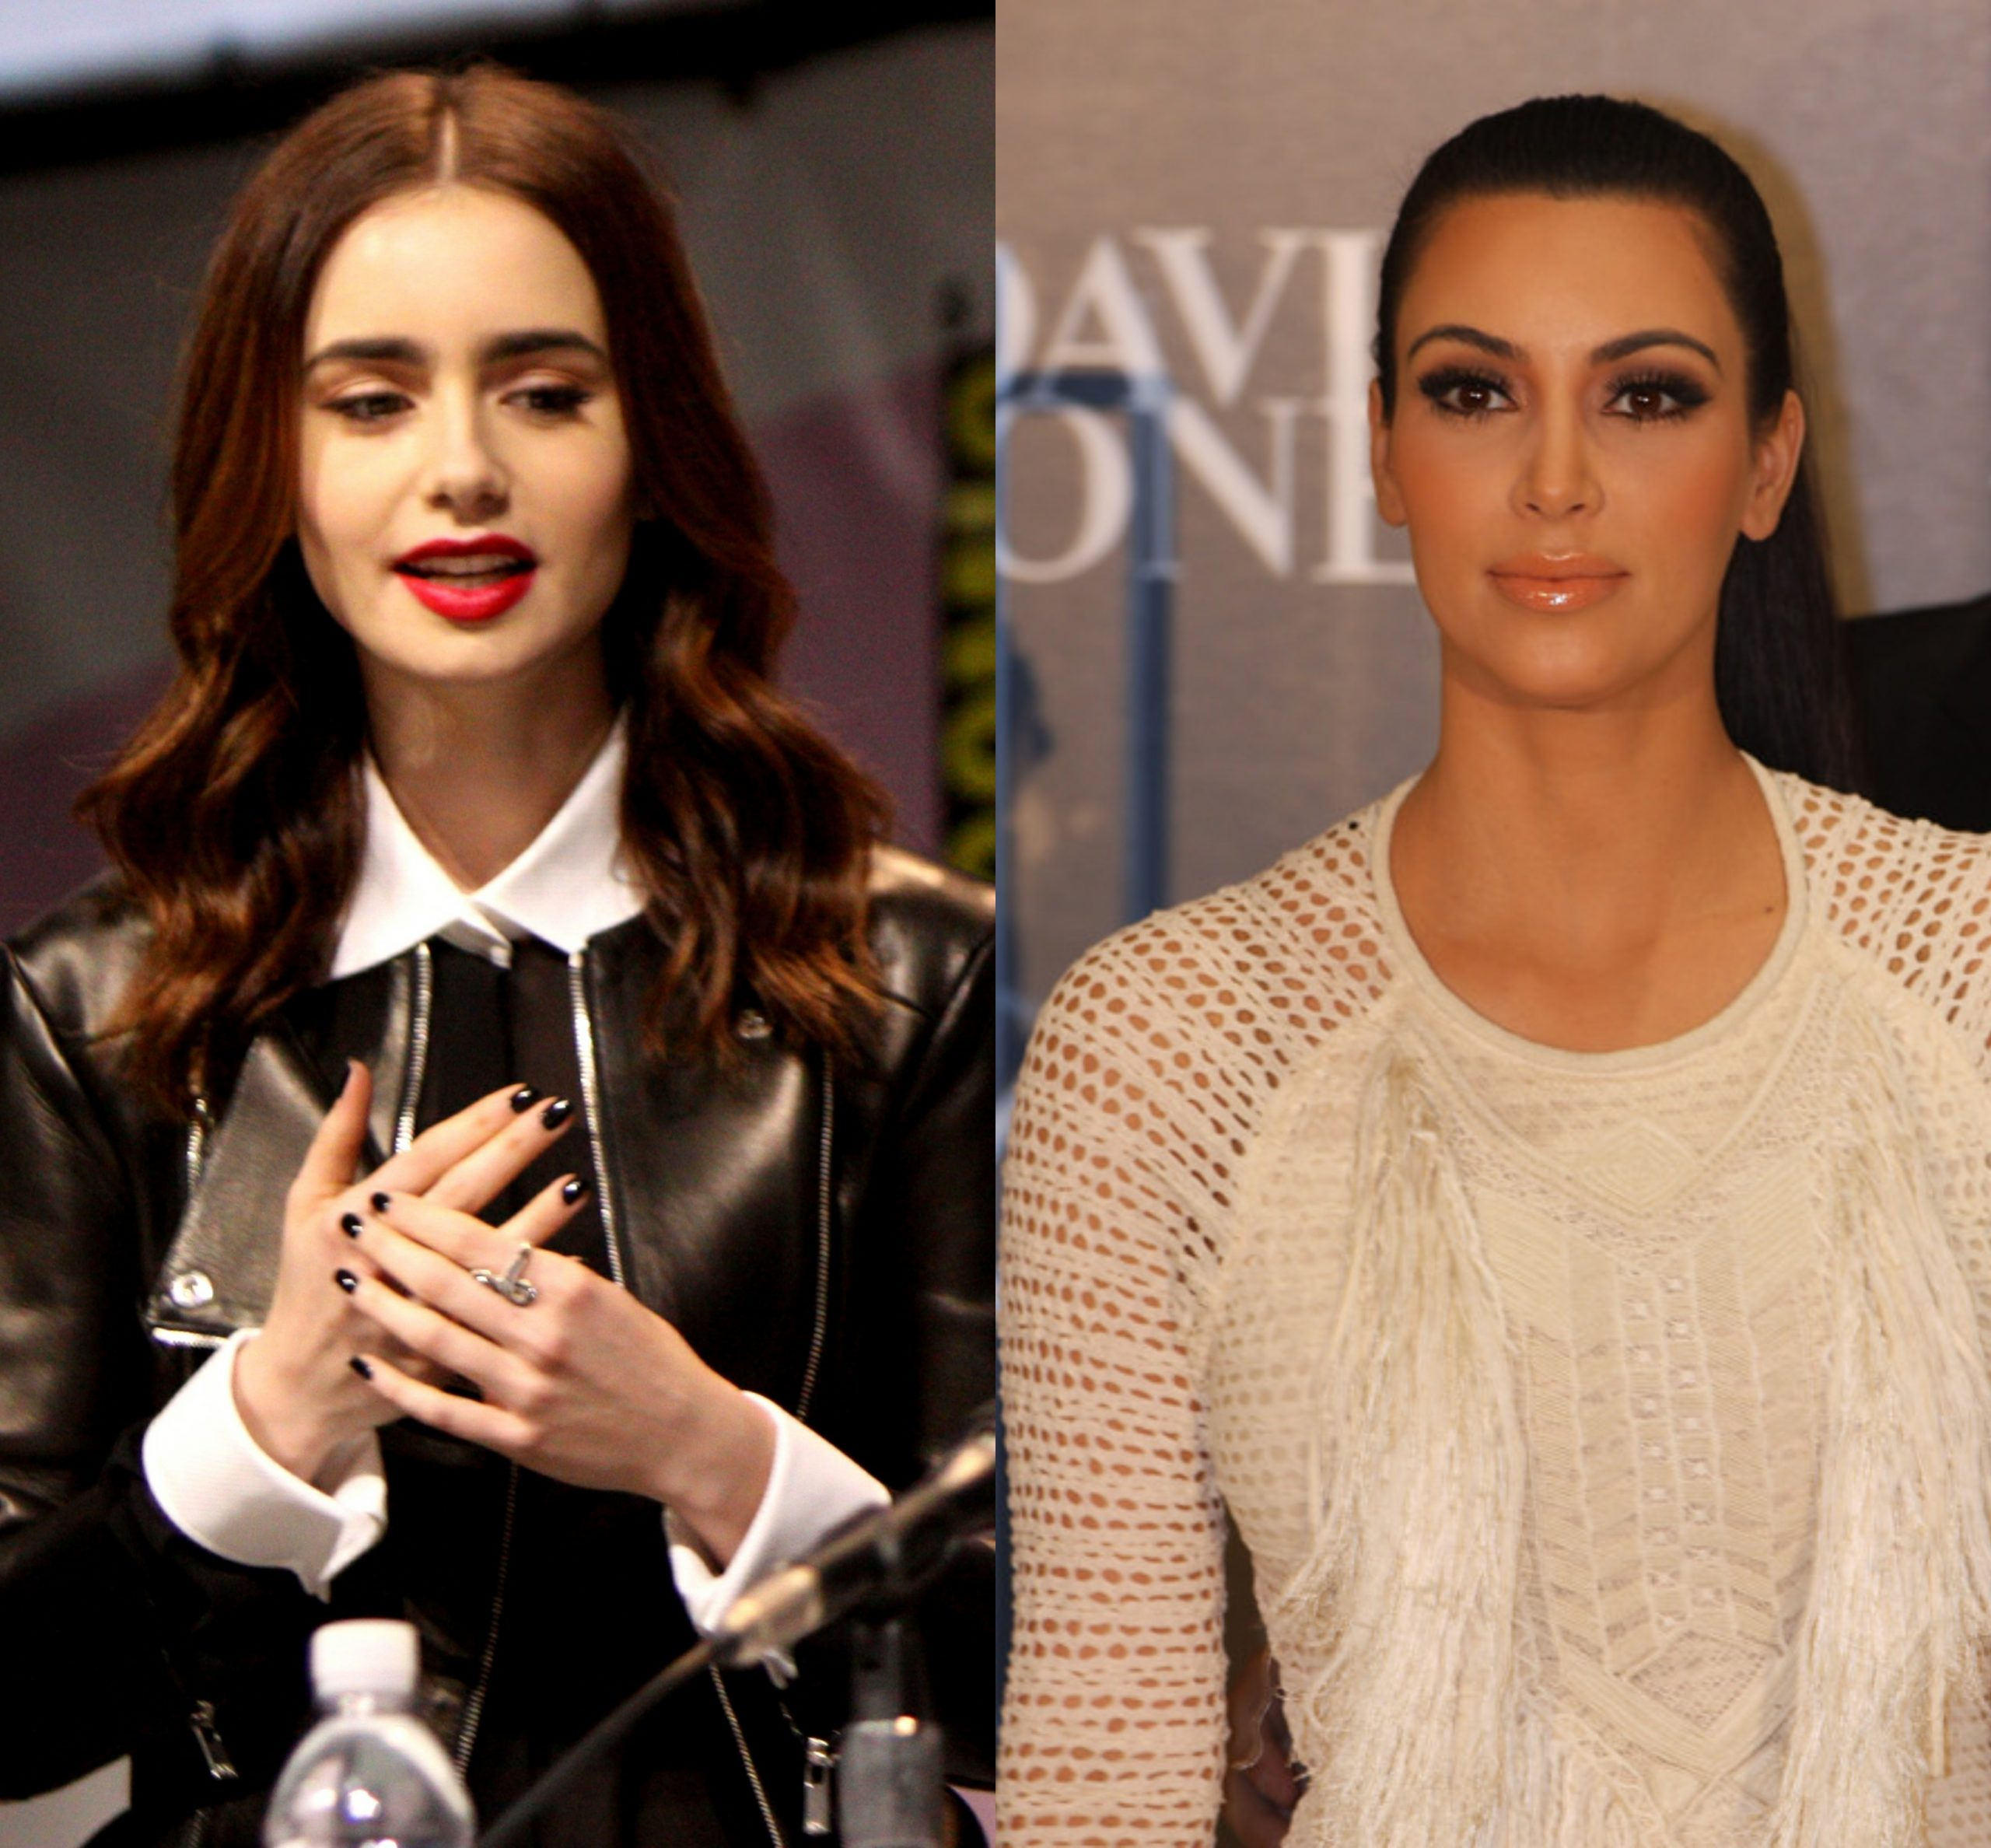 Pale Skin Vs Tan Skin: Which is more beautiful? - FashionBustle